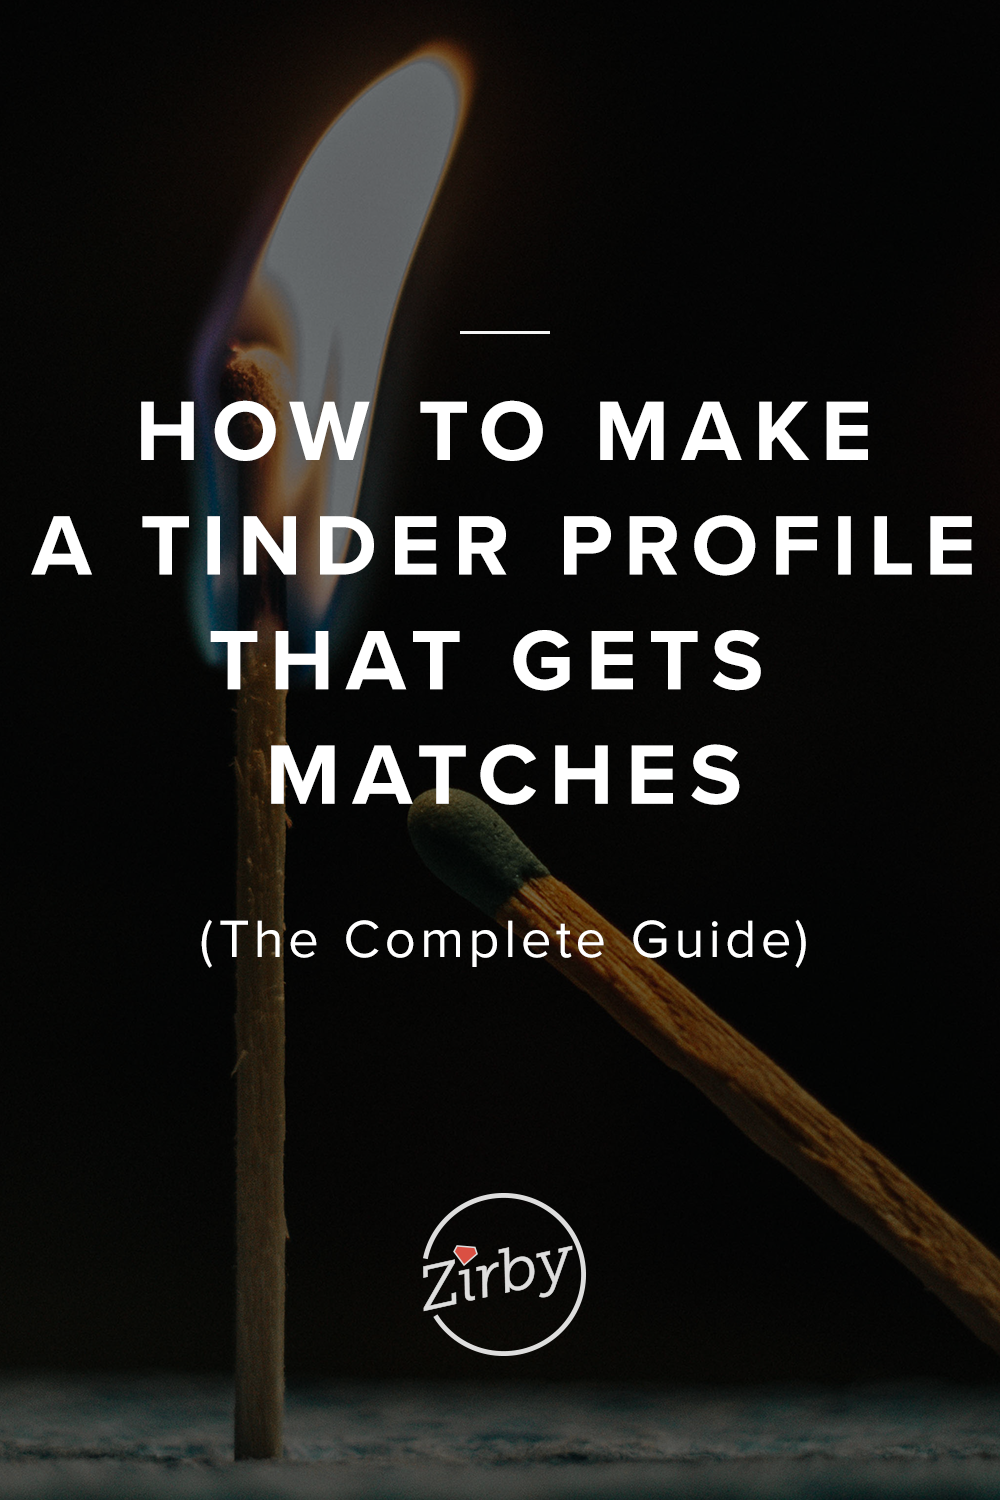 How to Make a Tinder Profile that Gets Matches | Zirby